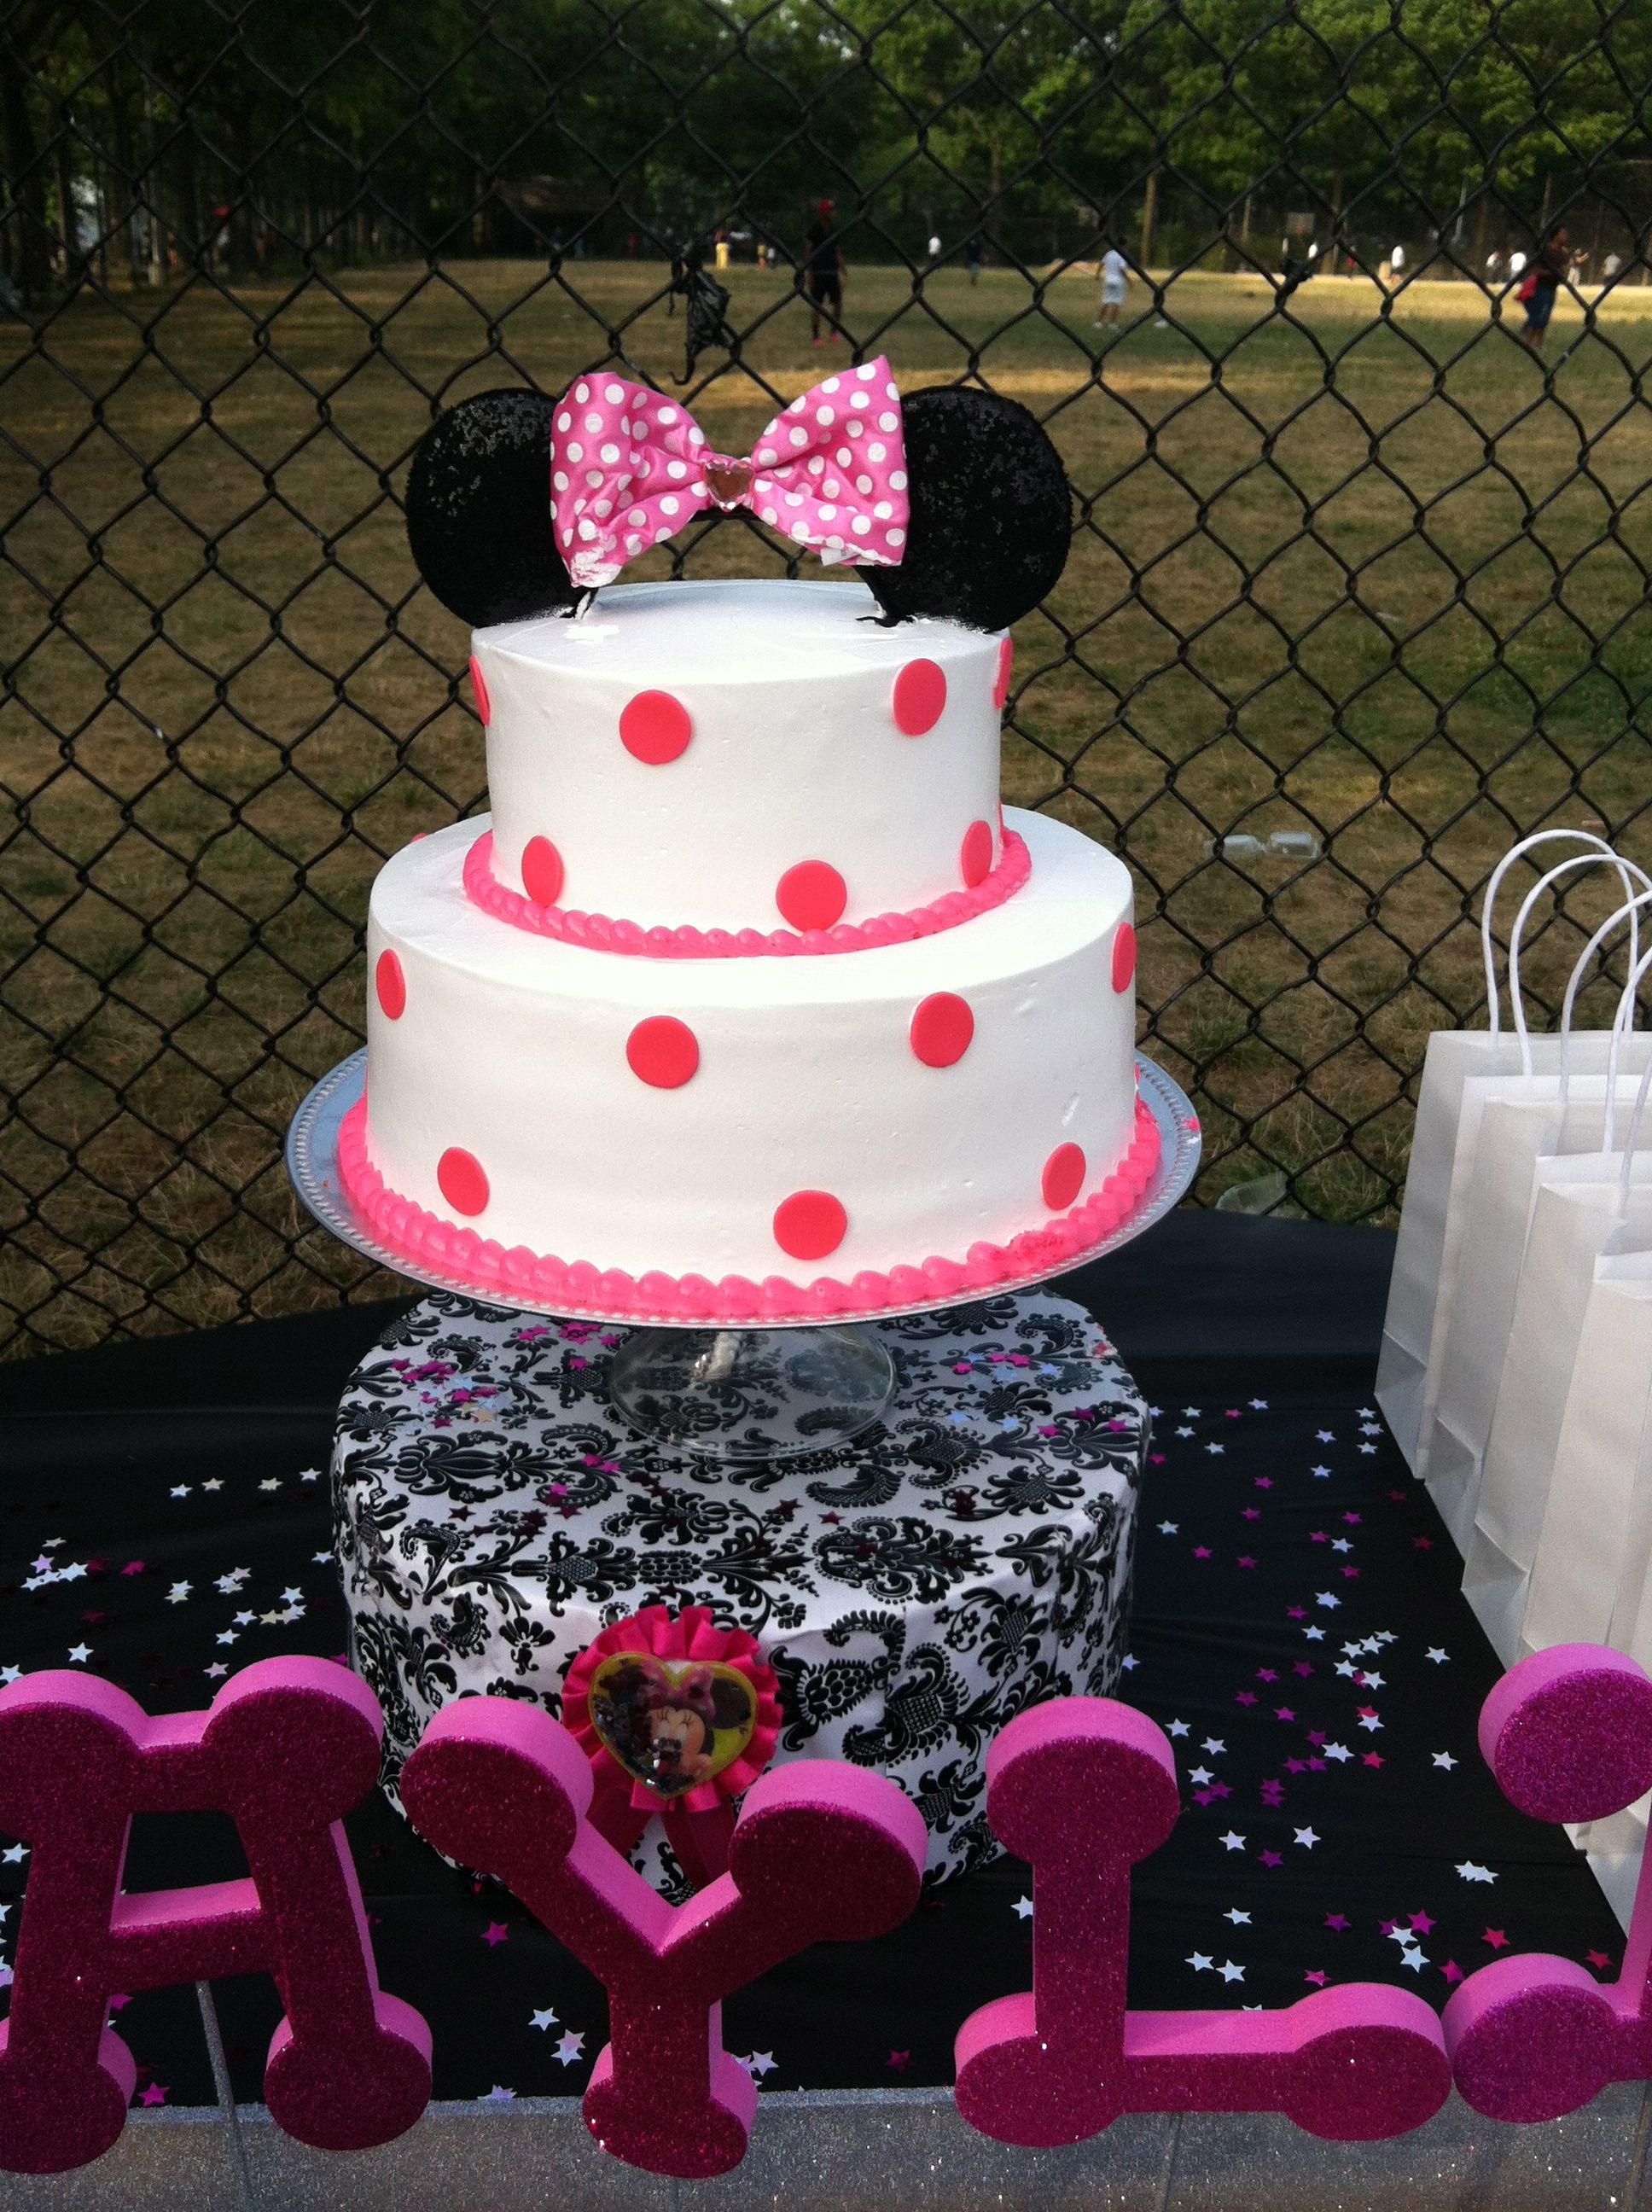 Pin By Marlene Rojas On Kid S Parties Minnie Mouse Cake Topper Minnie Mouse Cake Decorations Cake Decorating